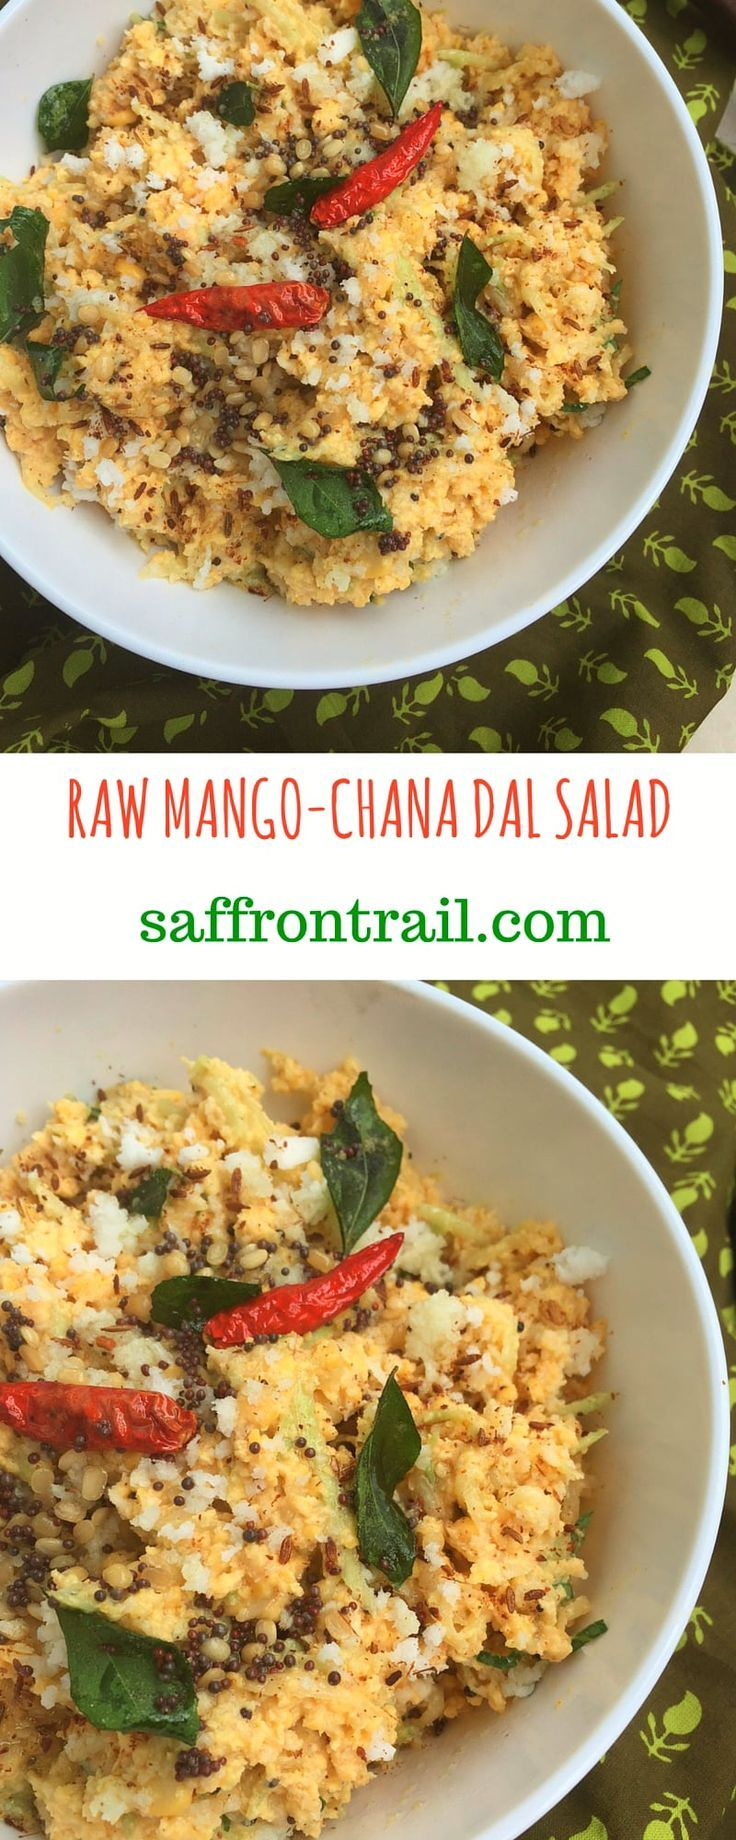 Raw mango chana dal in indian style salad recipe indian meal raw mango chana dal in indian style salad recipe indian meal meals and salad forumfinder Gallery